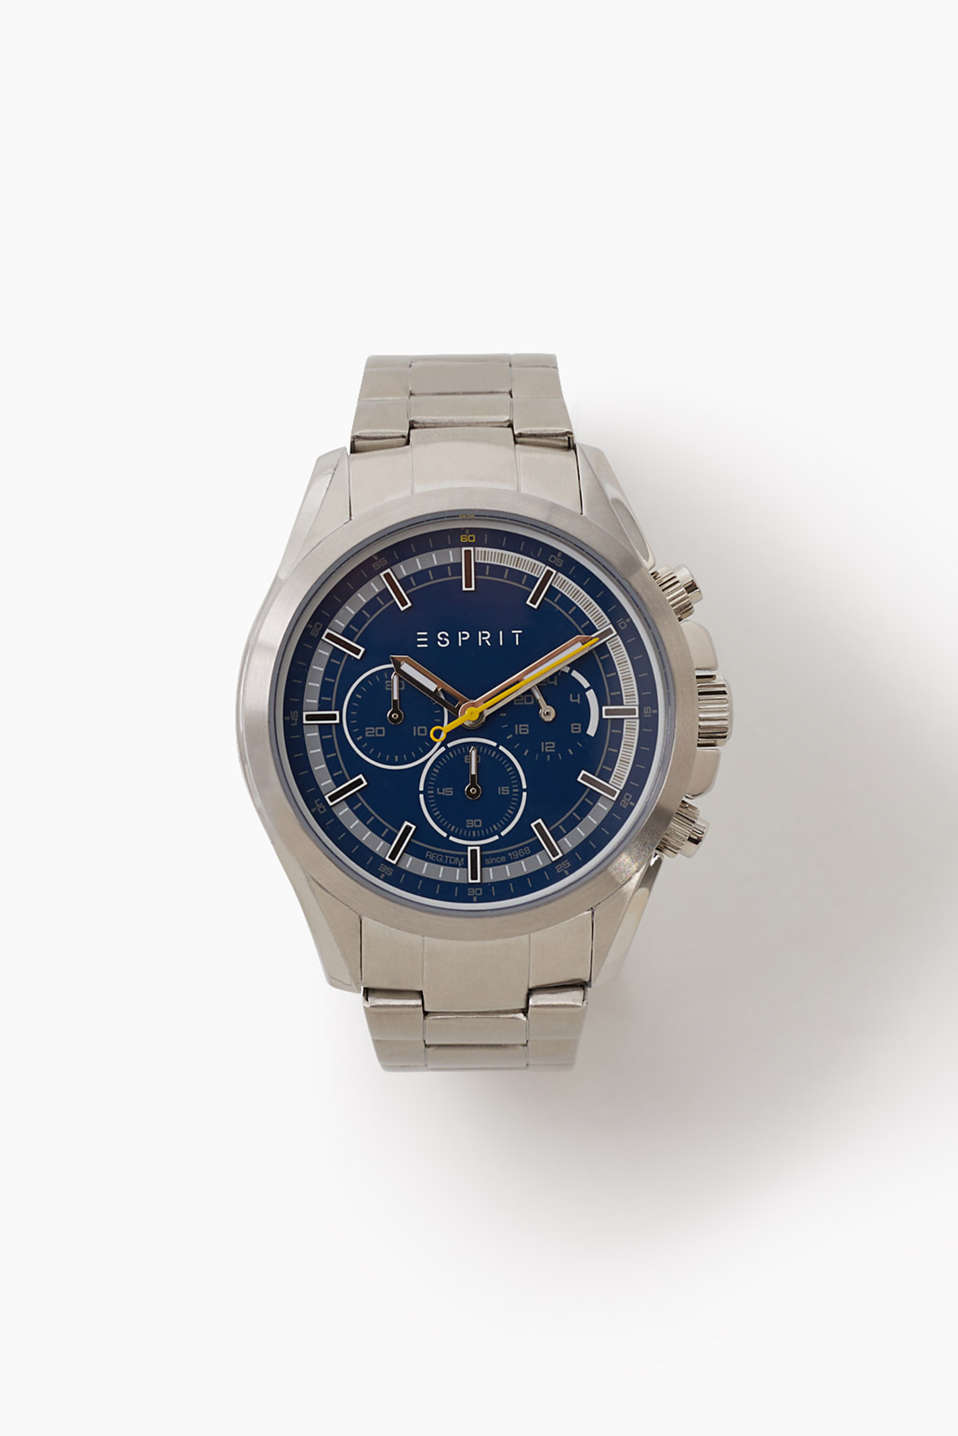 Chrono with stainless-steel casing and link bracelet, stopwatch function, 24 hour hand, Ø approx. 44 mm